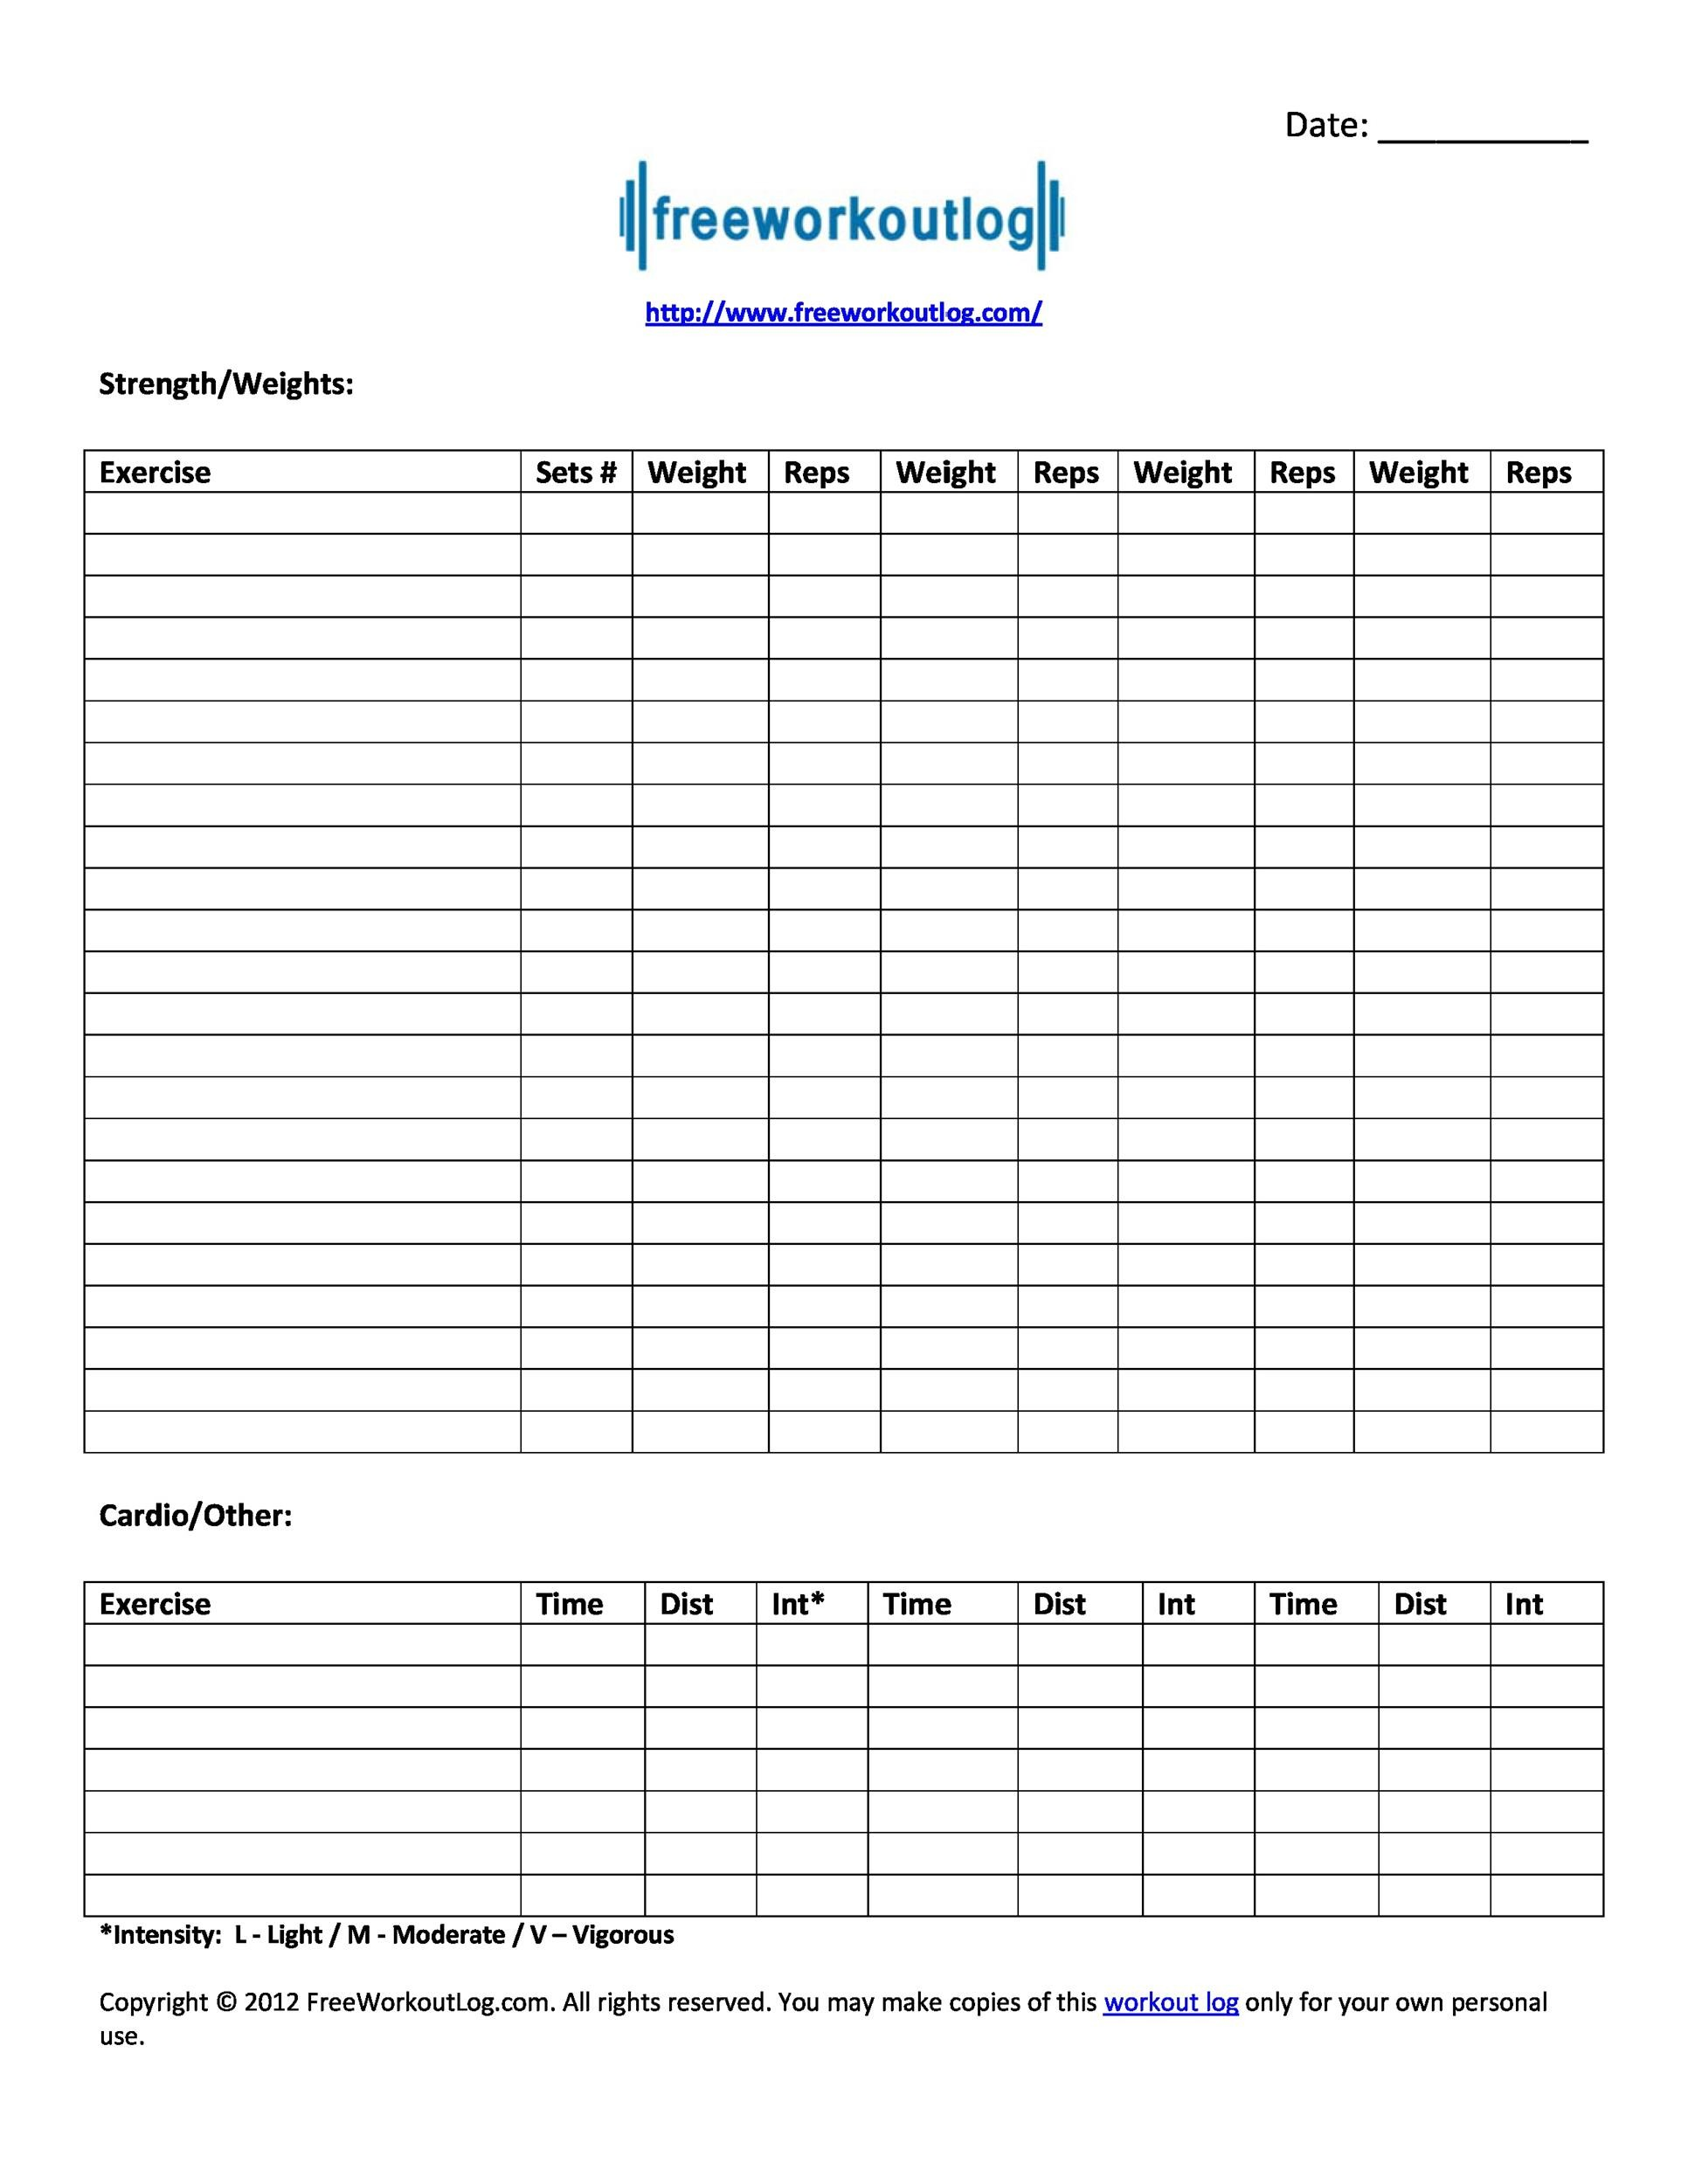 fitness journal template printable - 40 effective workout log calendar templates template lab